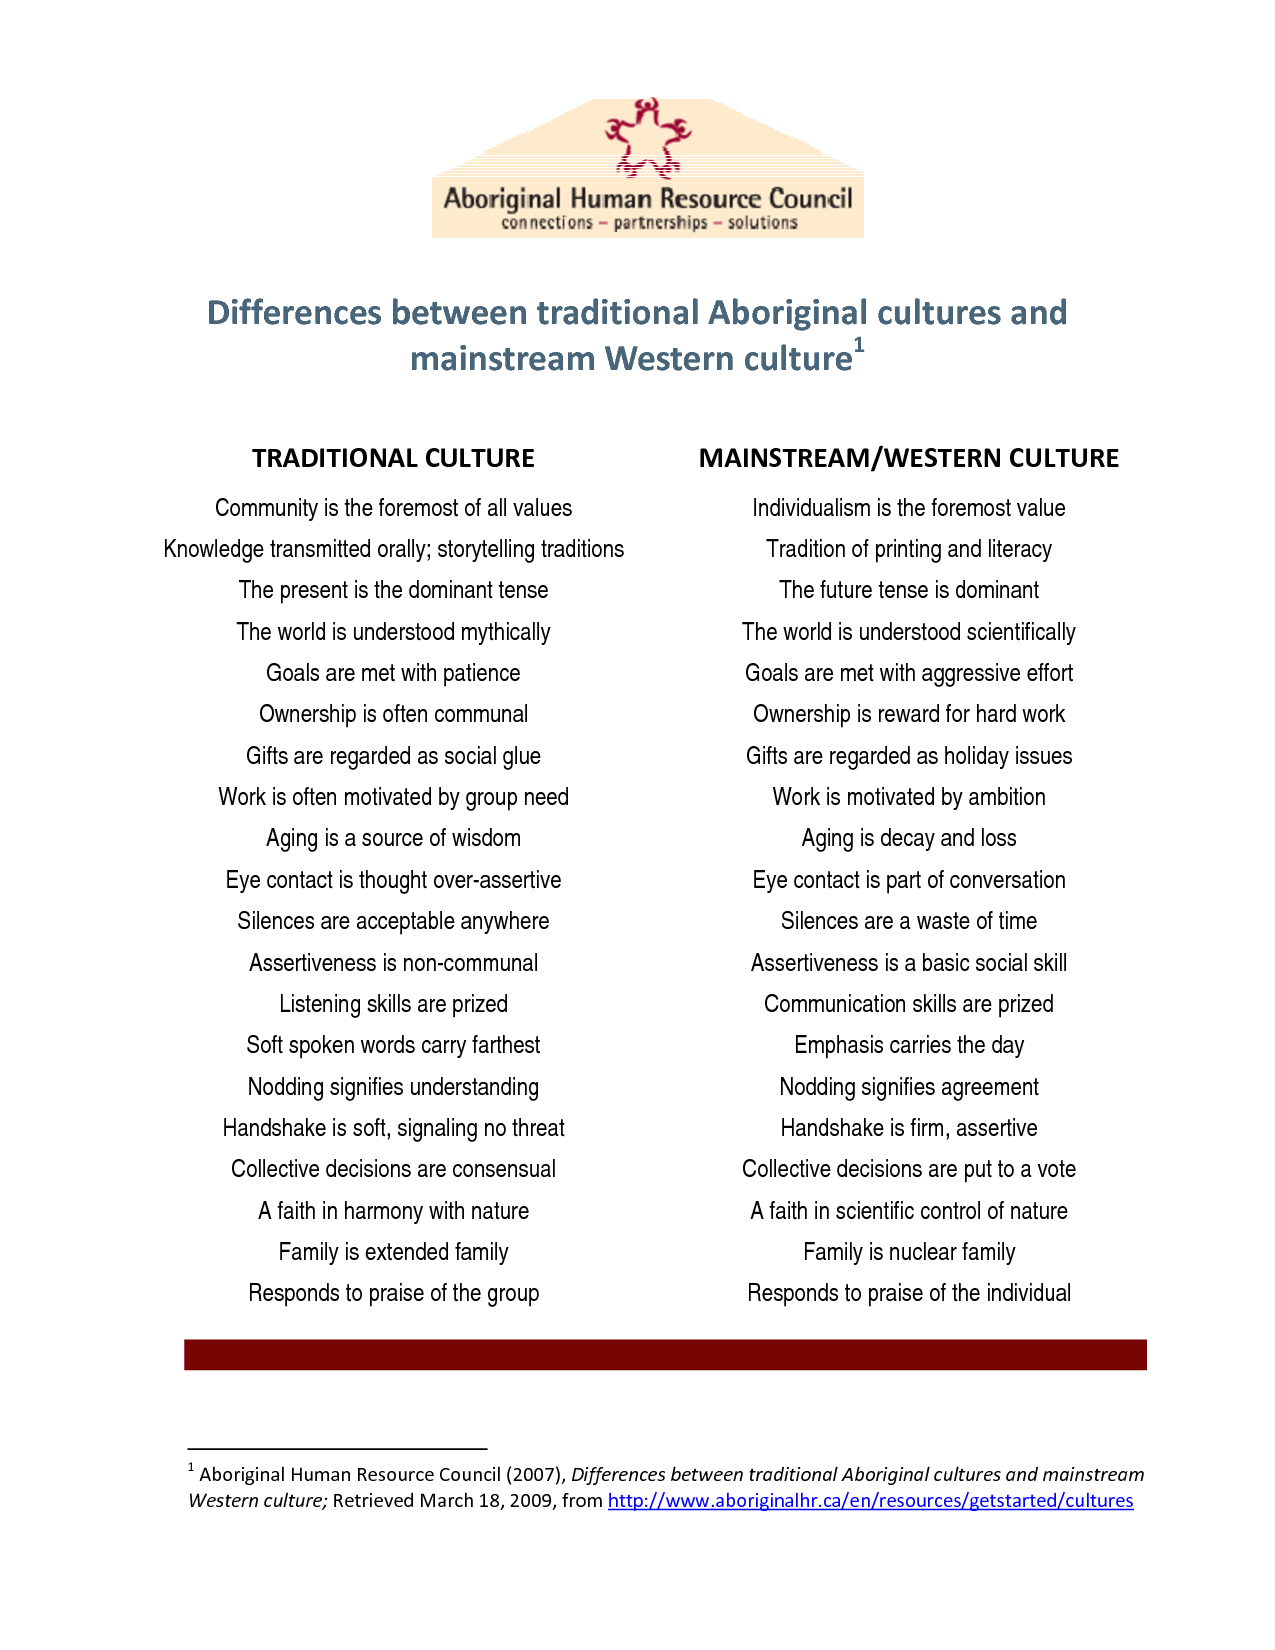 Differences Between Traditional Aboriginal Cultures And